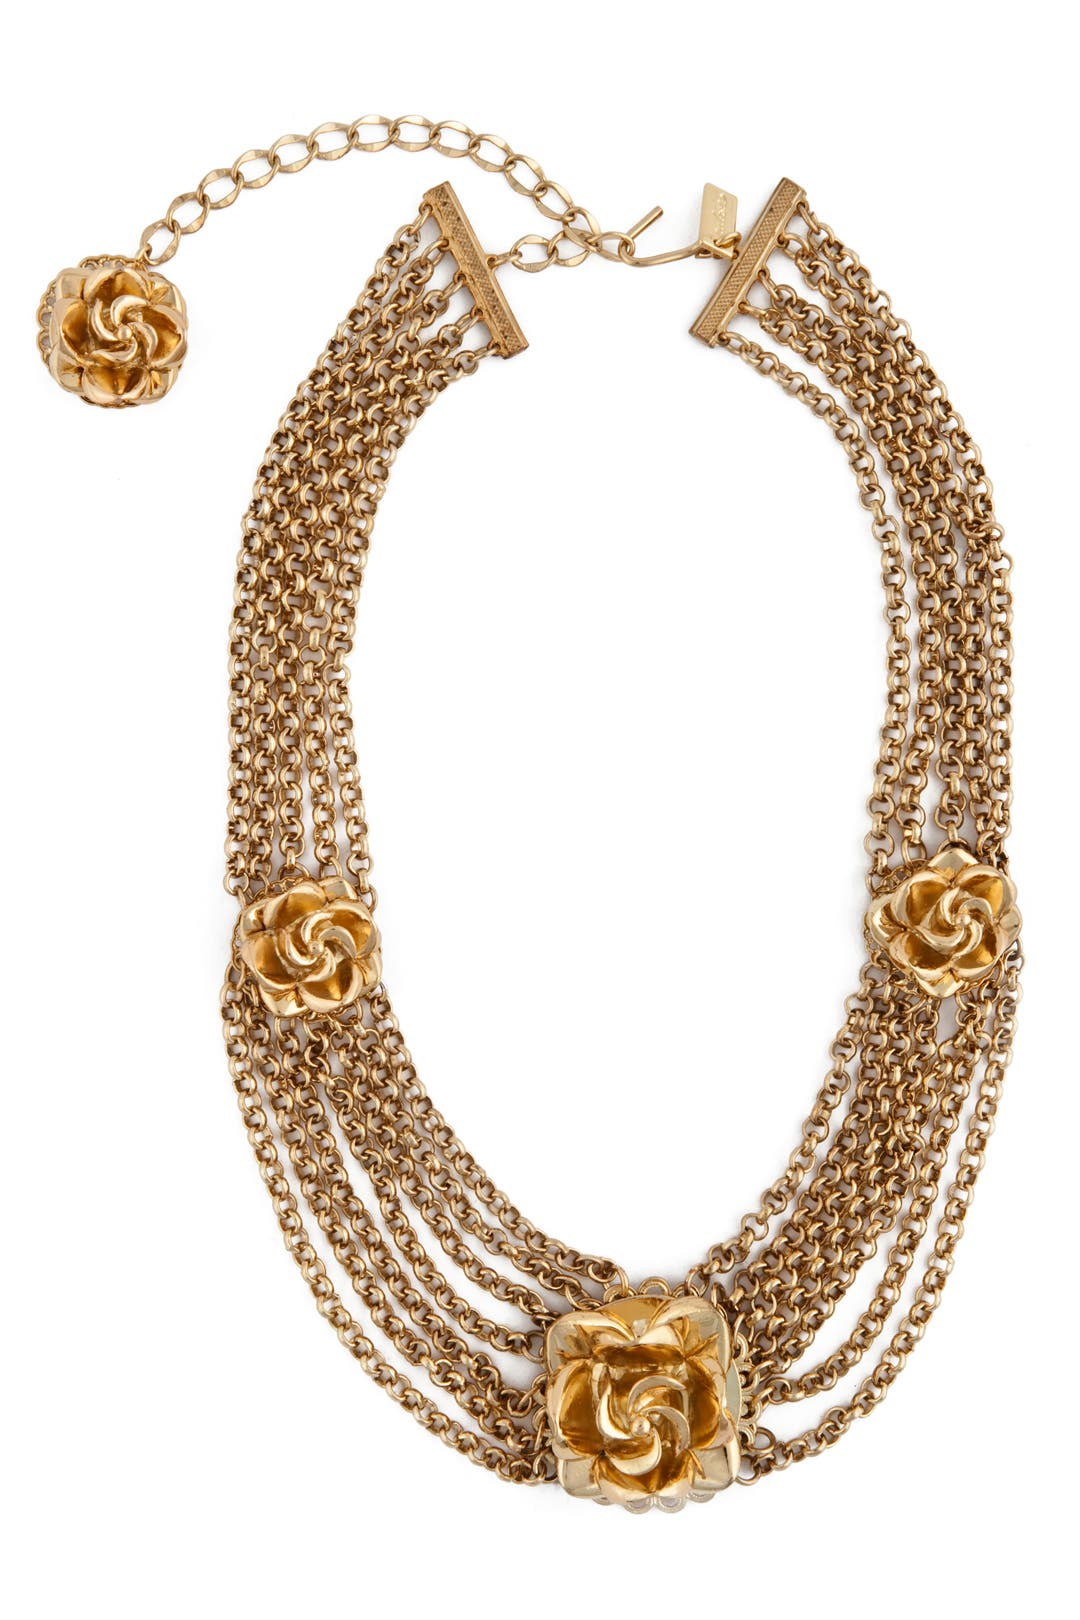 Triple Rosette Chain Necklace by Tuleste Market